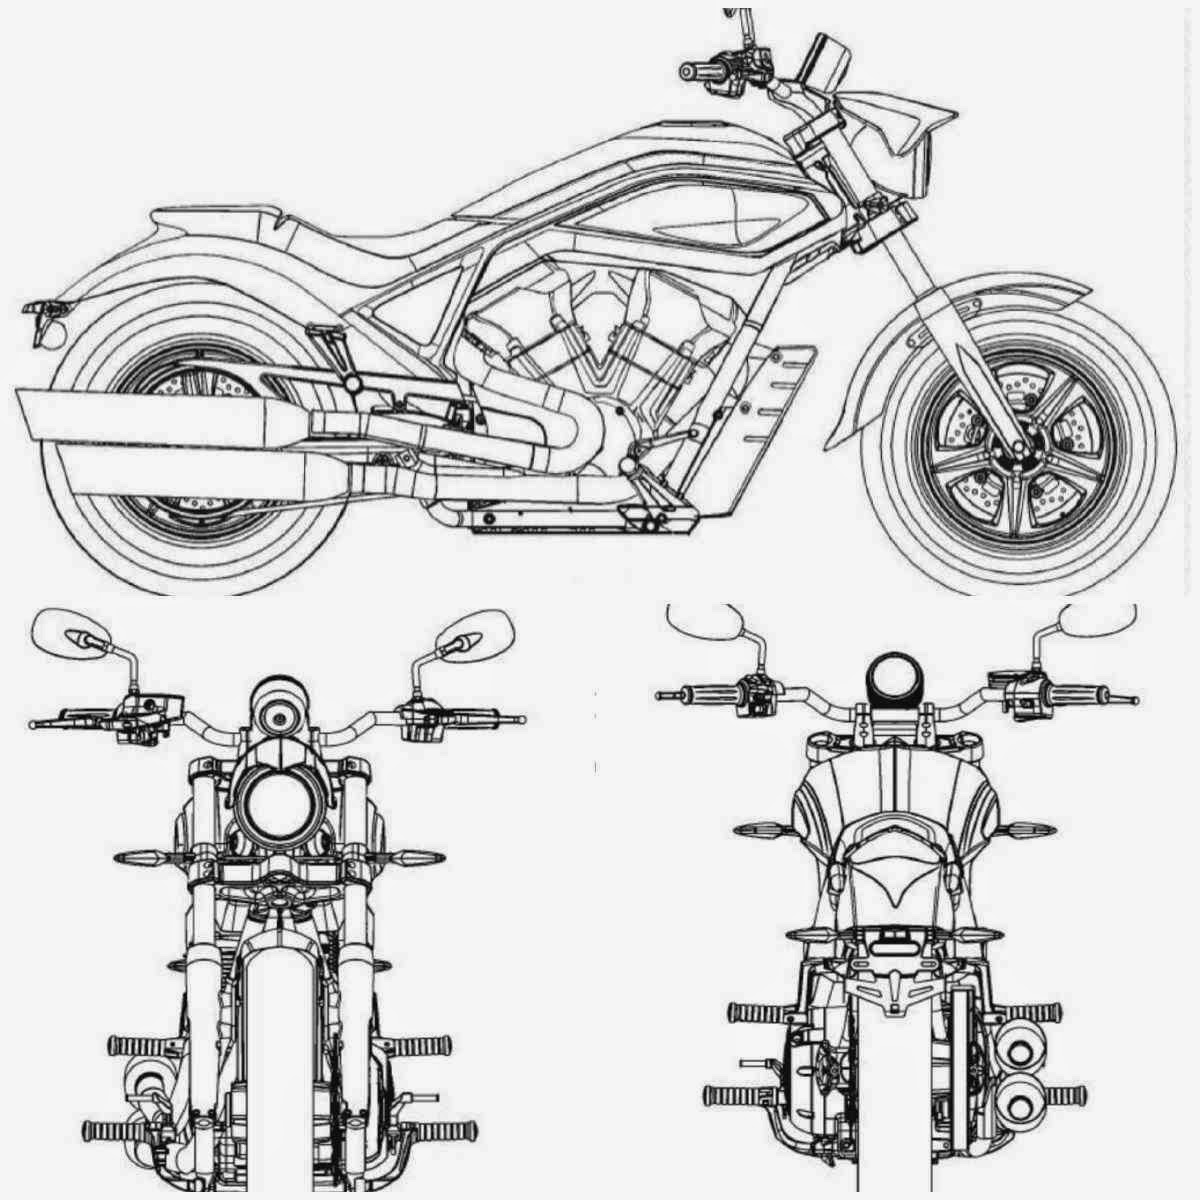 The Motorcycle Obsession Vw Bus Engine Diagram With Wheelie Bar Design By Salvador Gonzalez